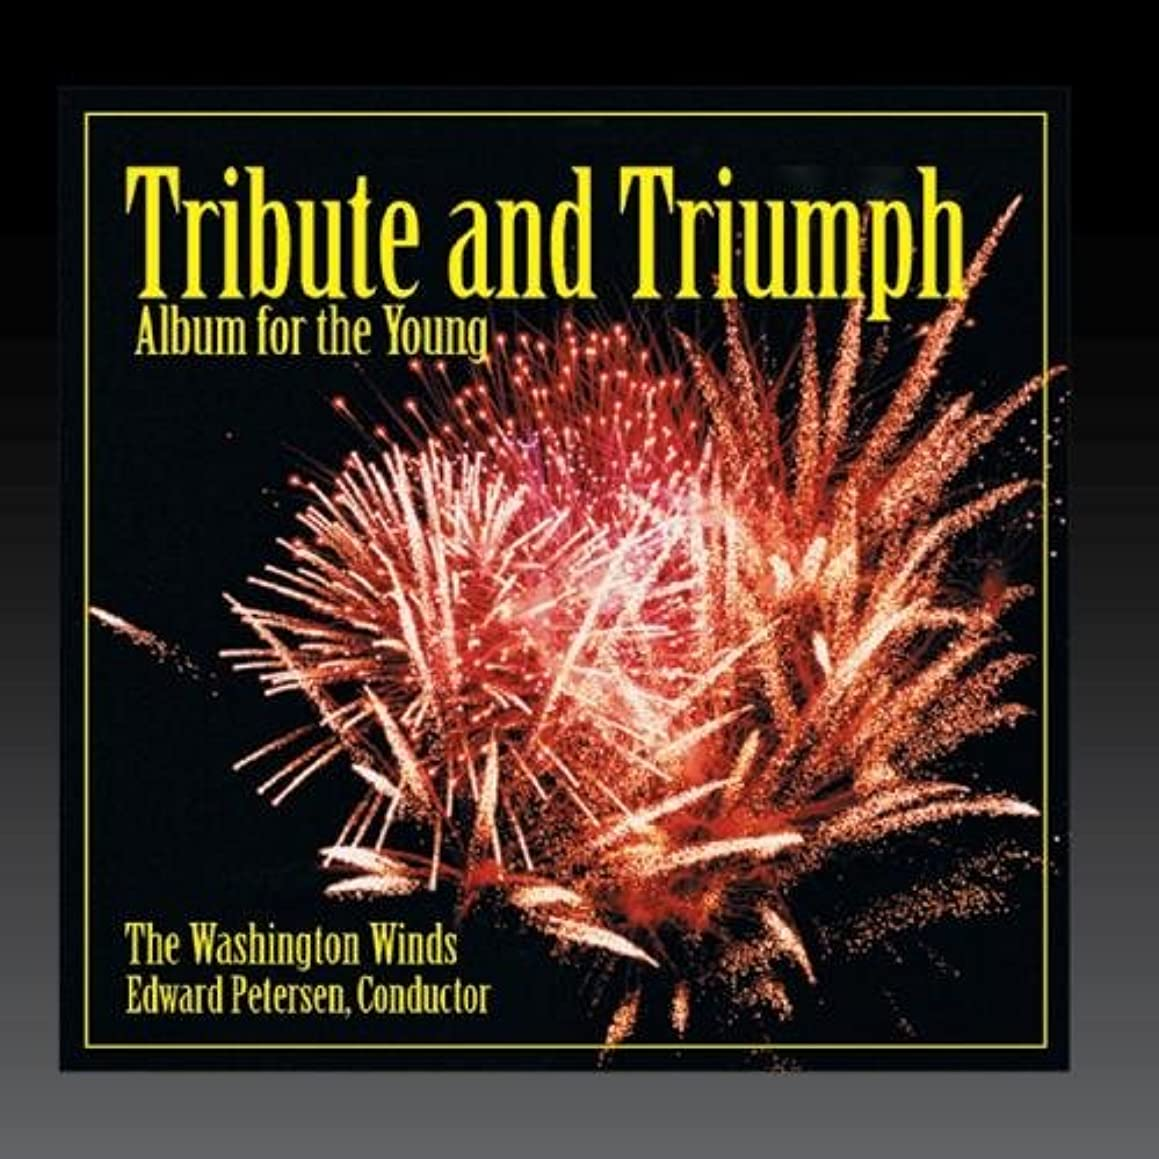 Tribute and Triumph: Album for the Young